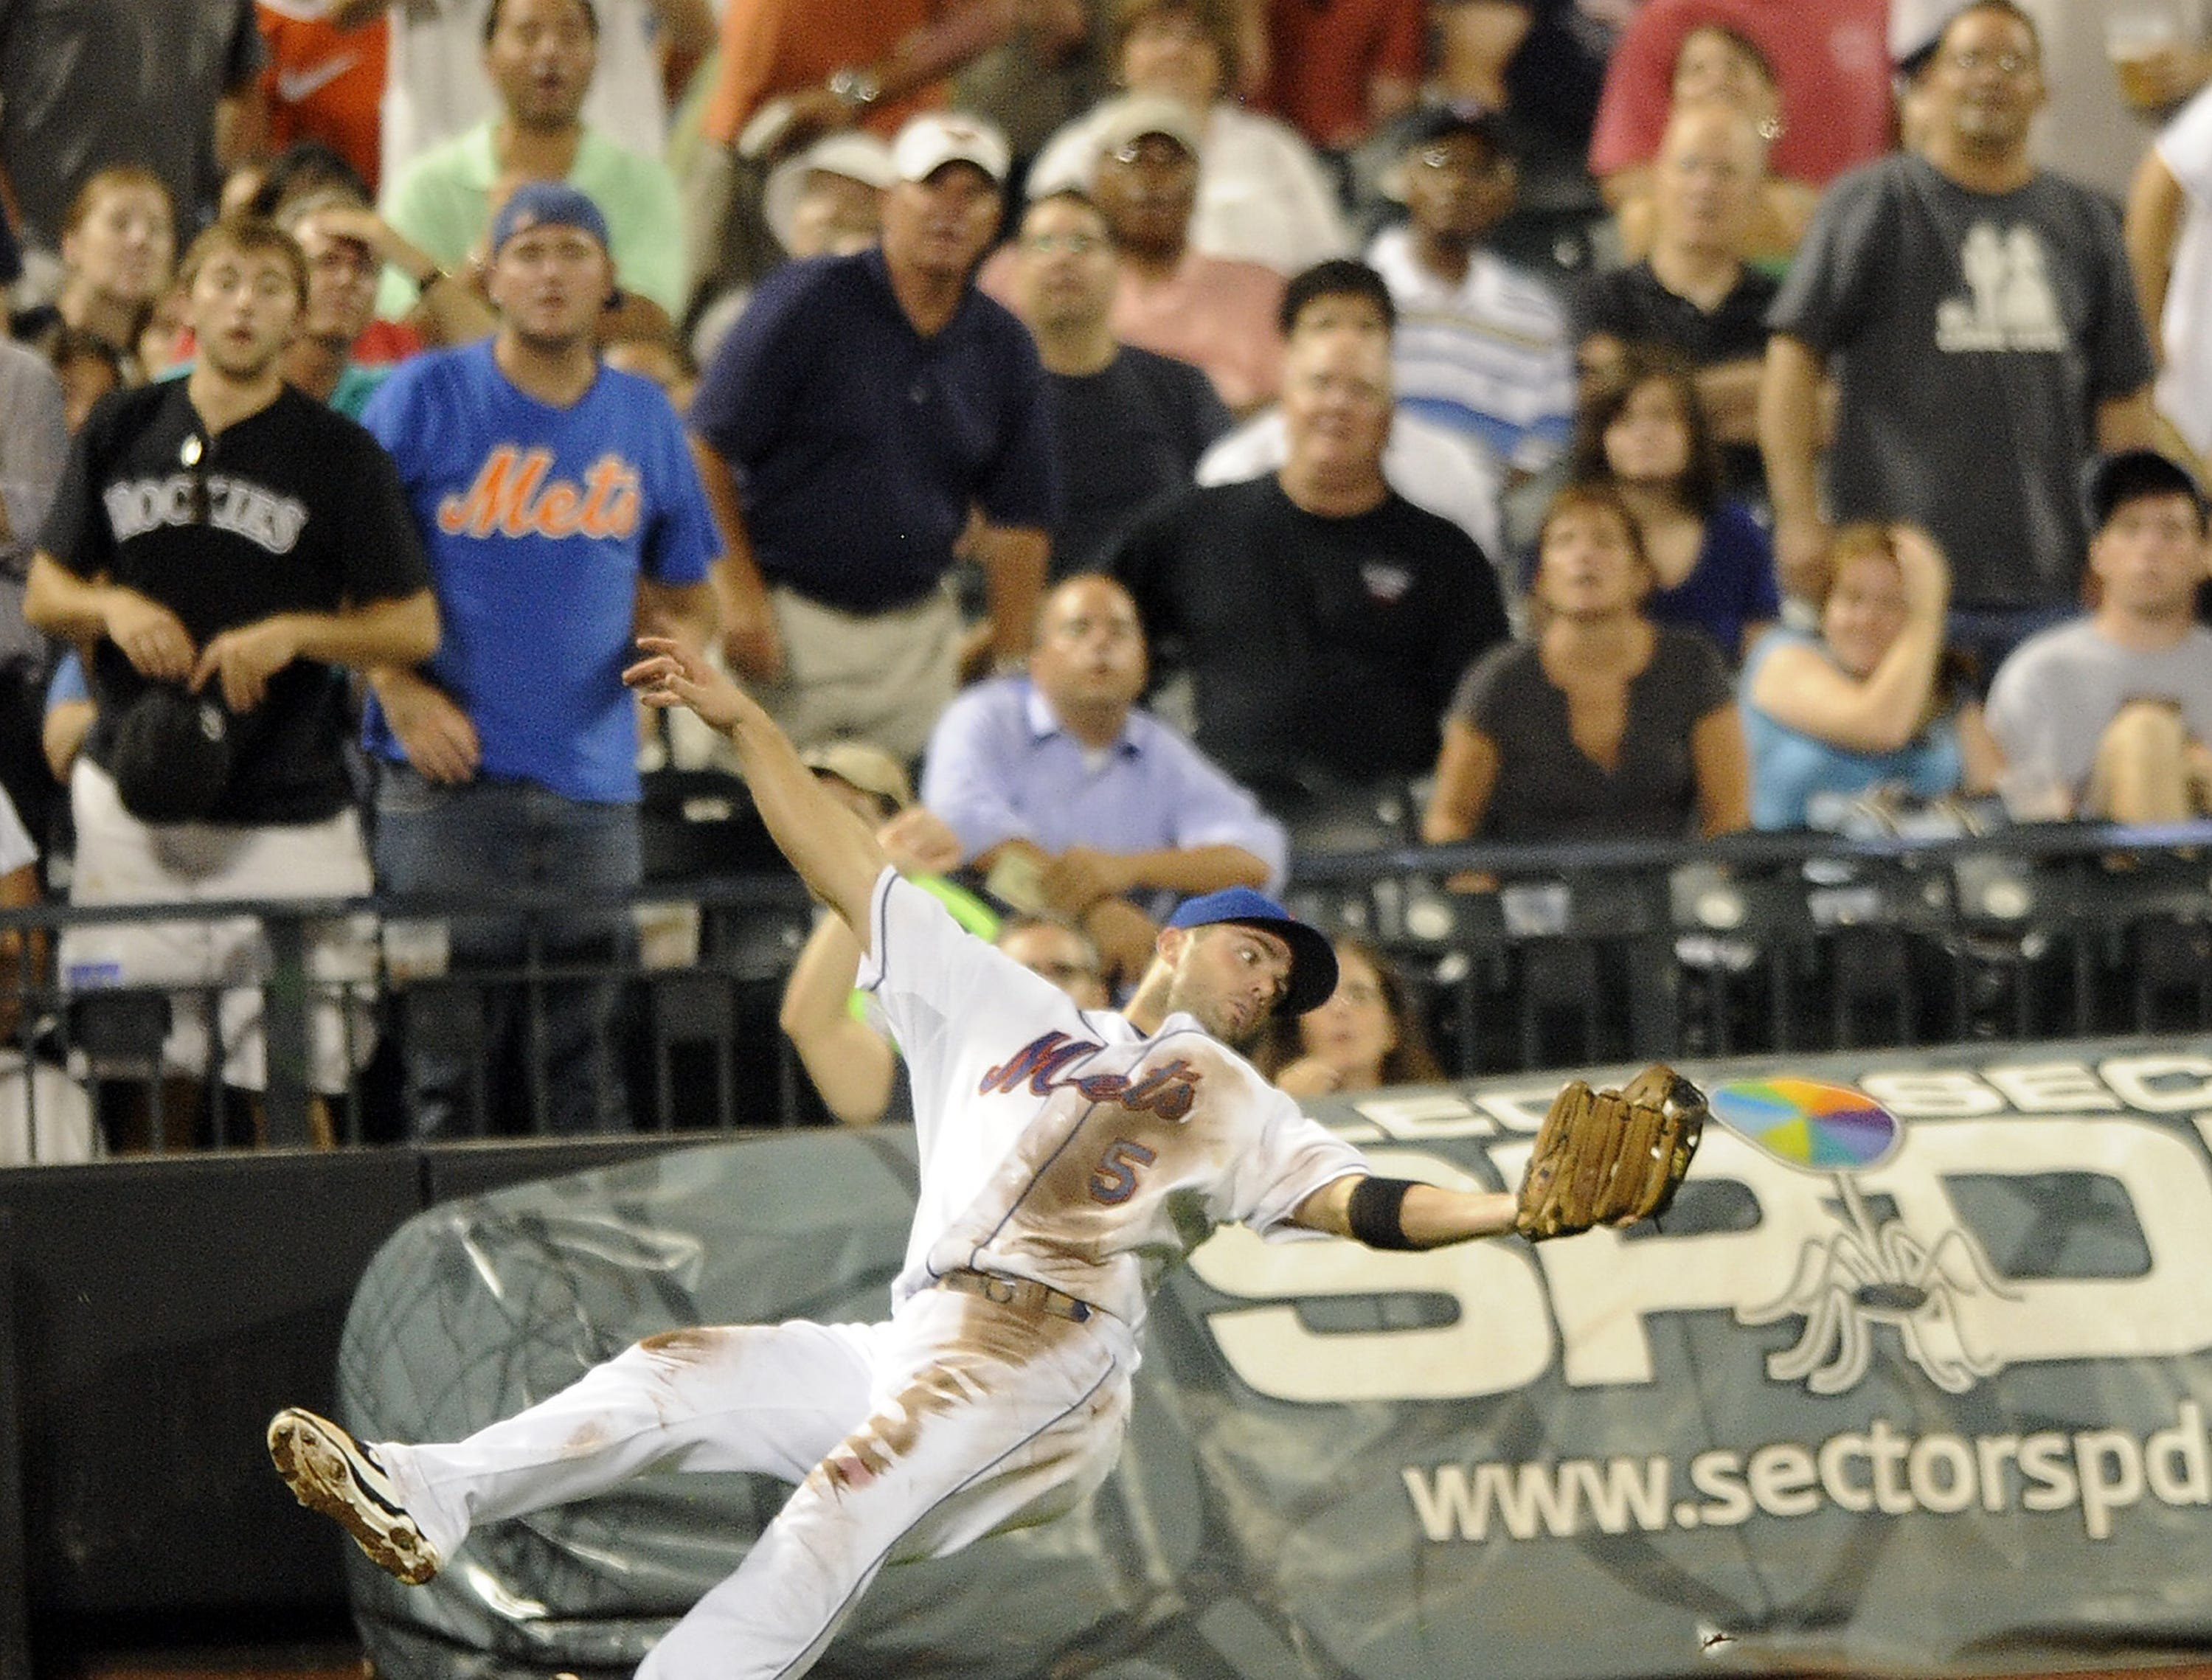 New York Mets vs Colorado Rockies. Mets 3rd baseman David Wright makes the catch on Rockies #9 Ian Stewart and falls down to crowd cheers.